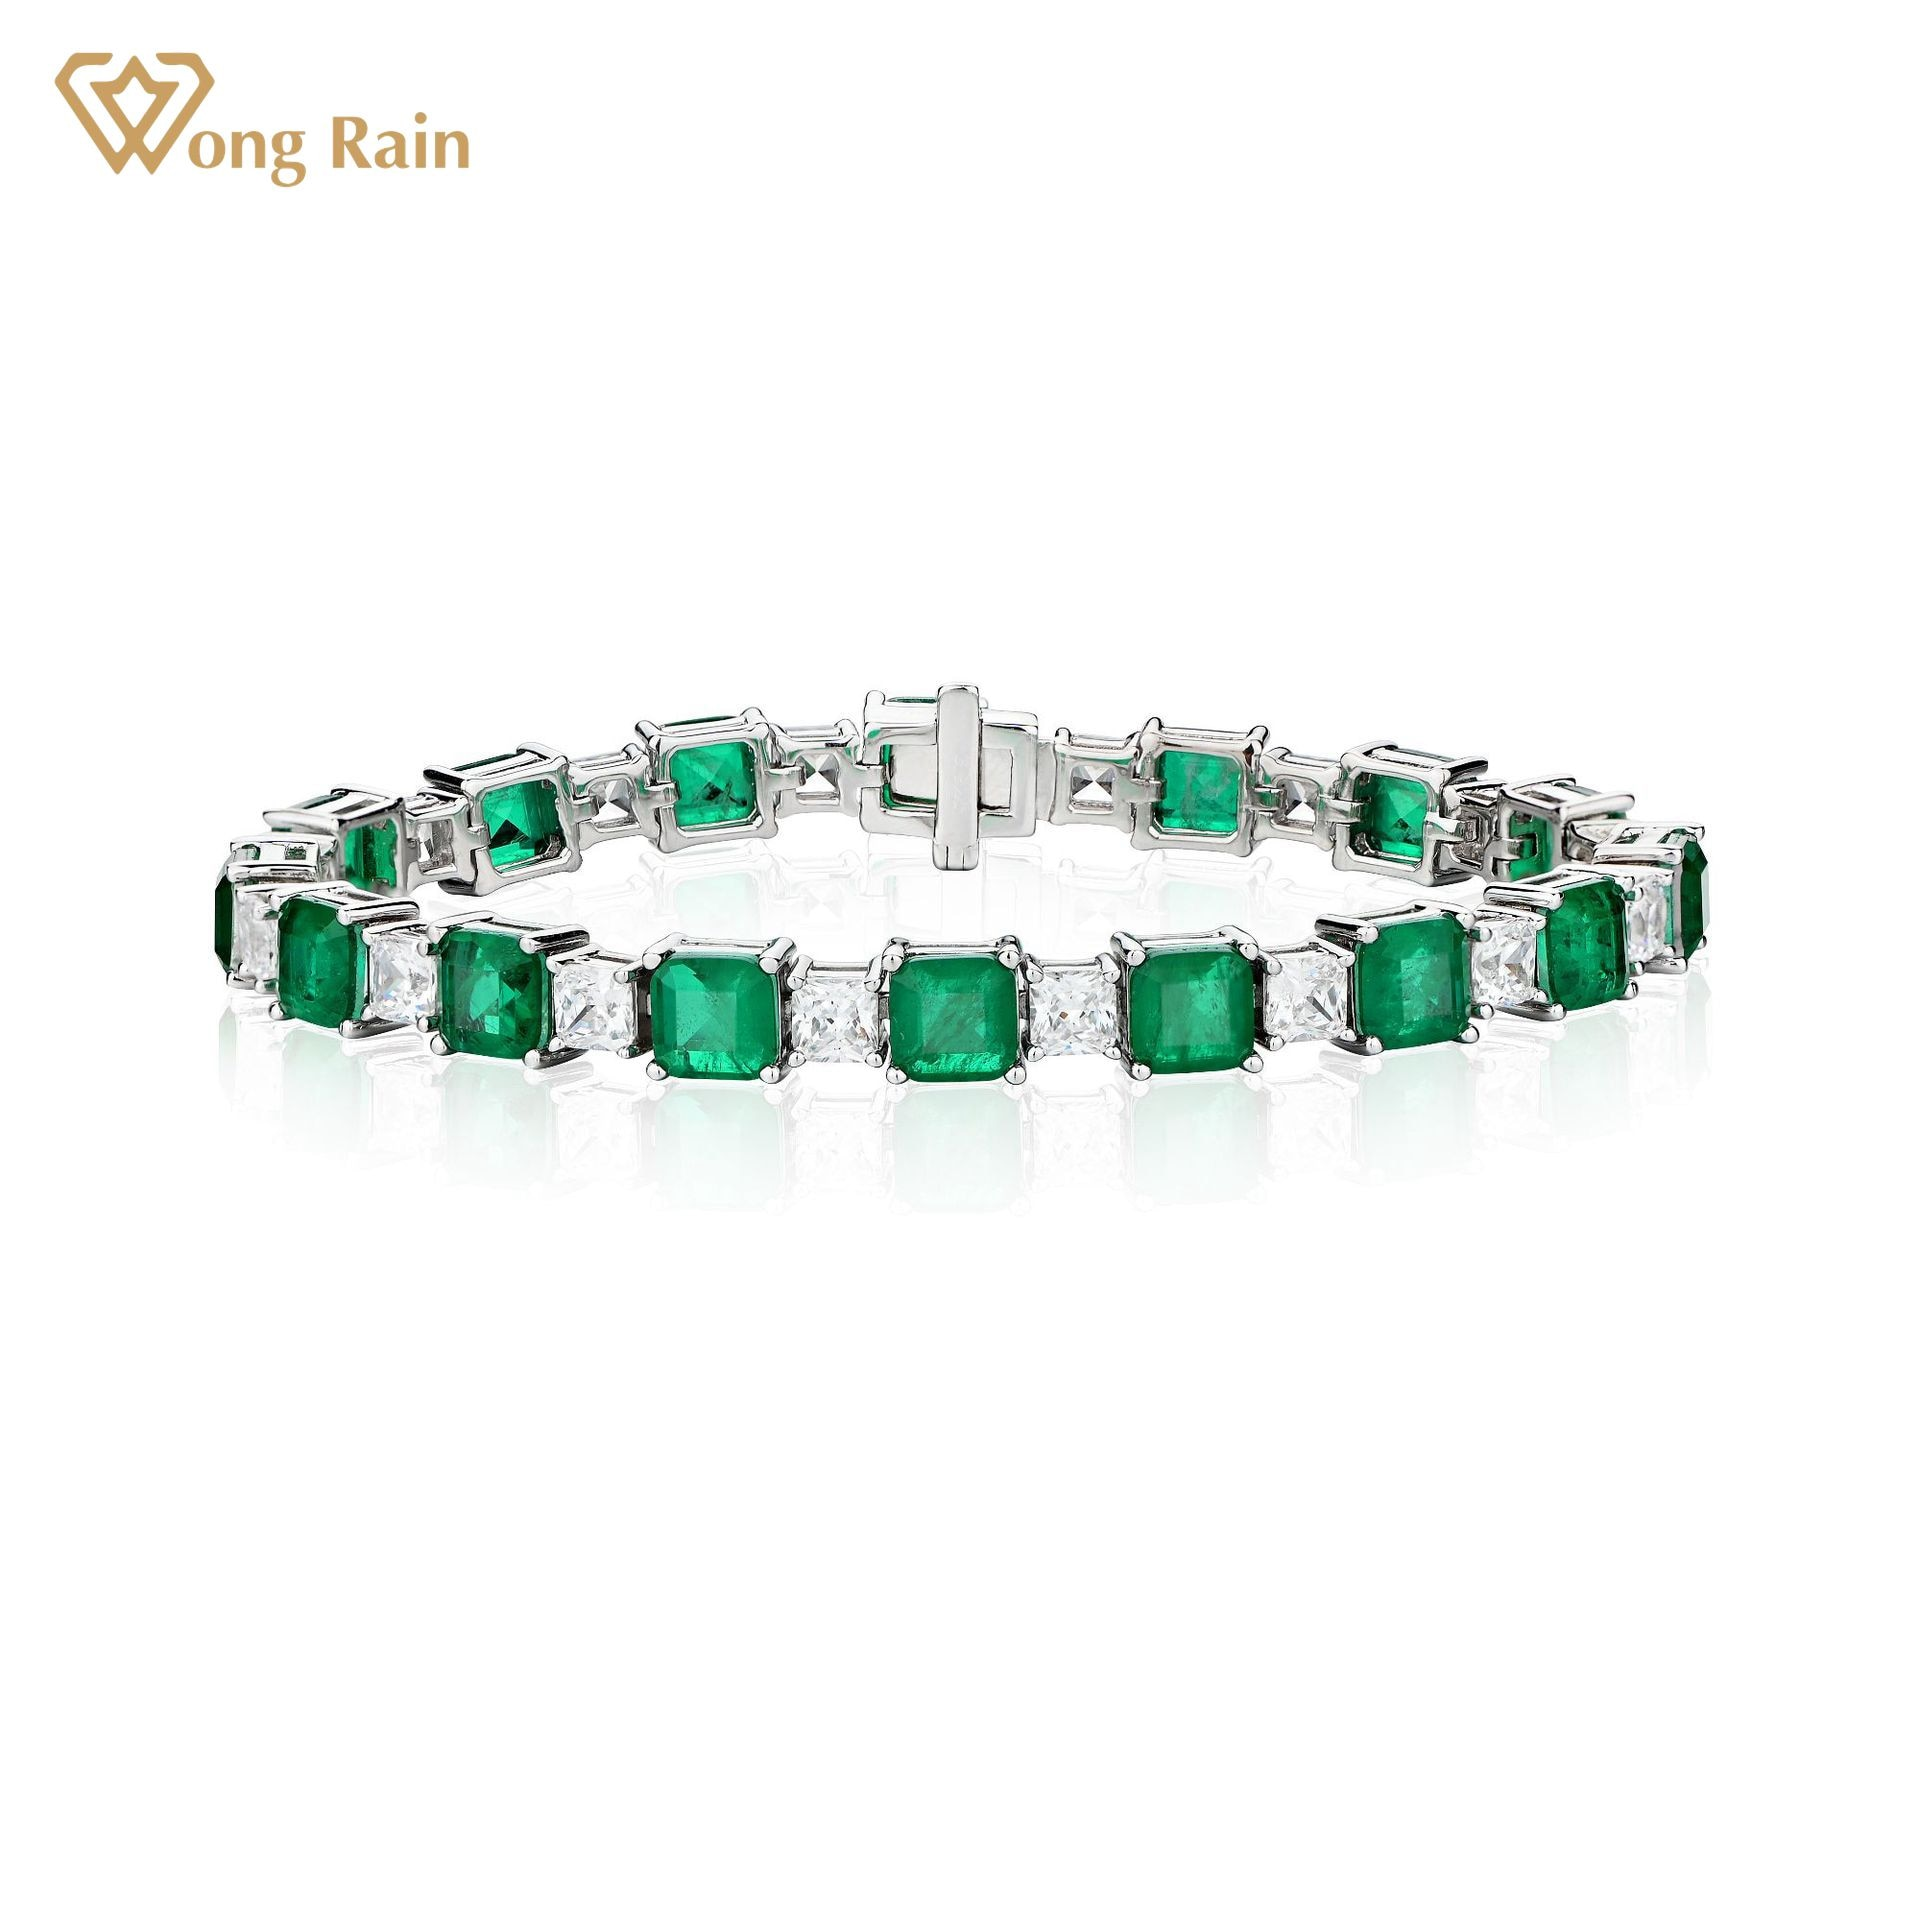 Wong Rain 925 Sterling Silver Emerald Created Moissanite Gemstone Personality Vintage Charm Bracelets Engagement Fine Jewelry